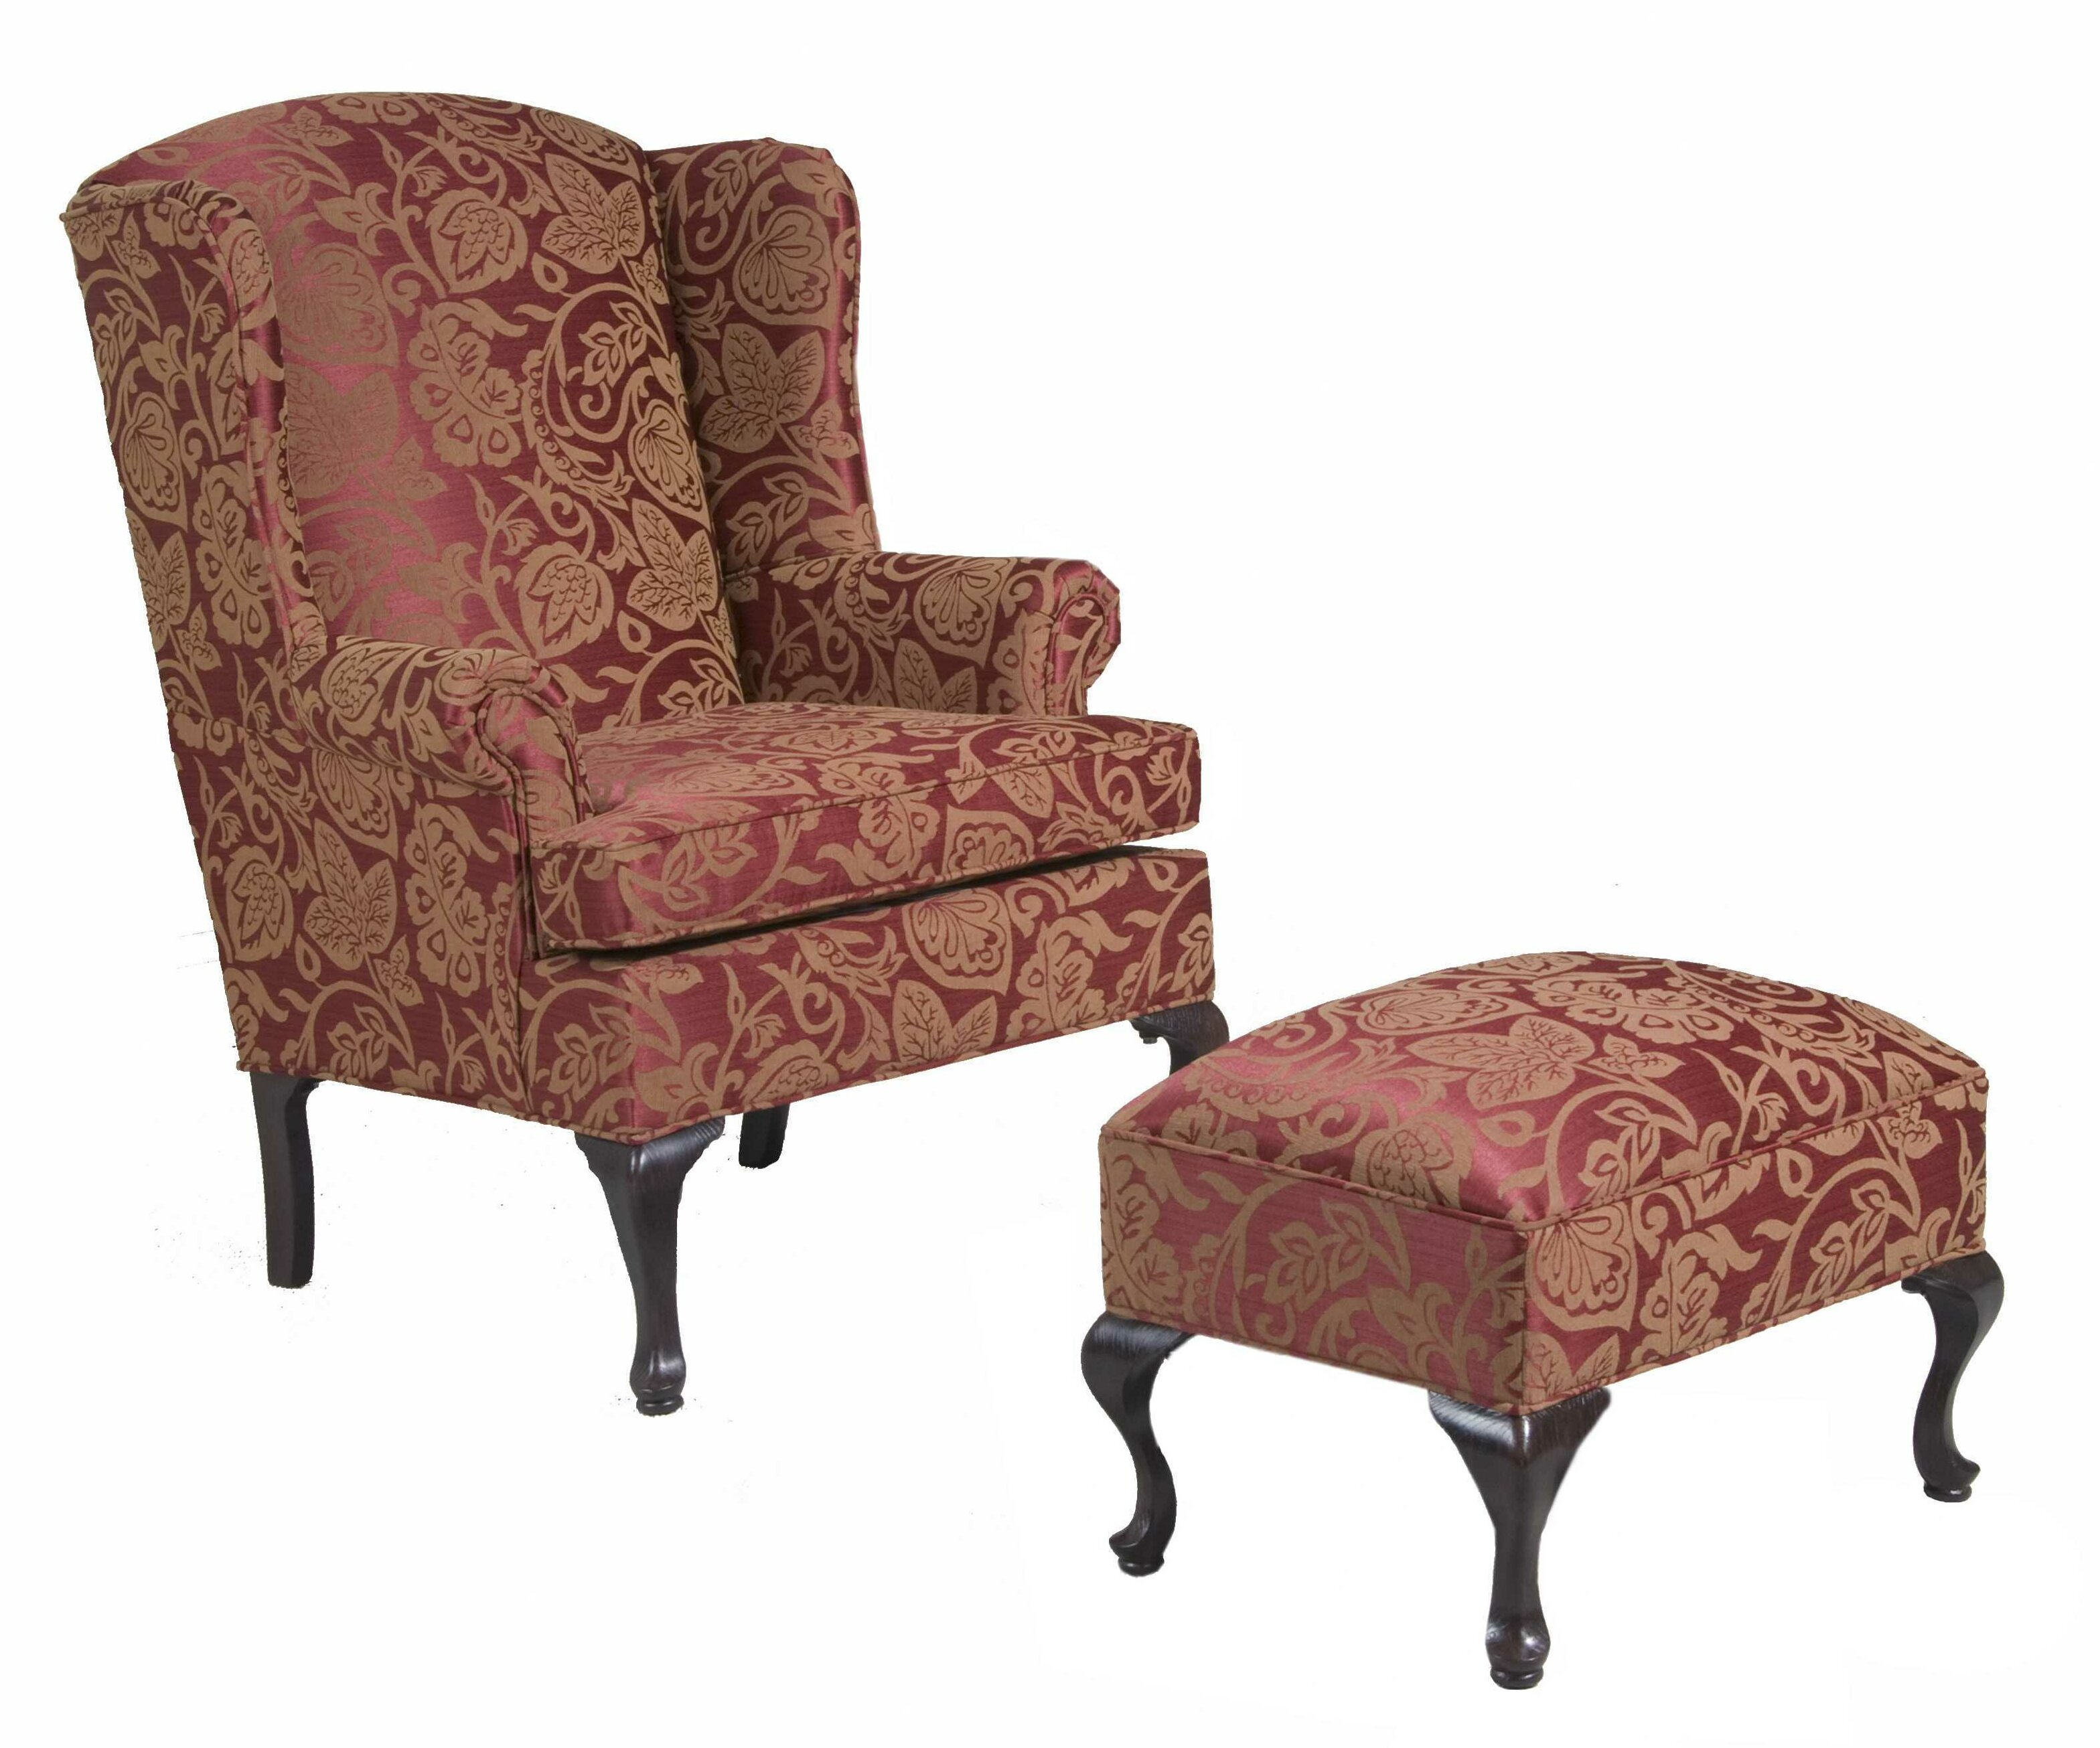 Three Posts Damask Wing Back Chair And Ottoman & Reviews